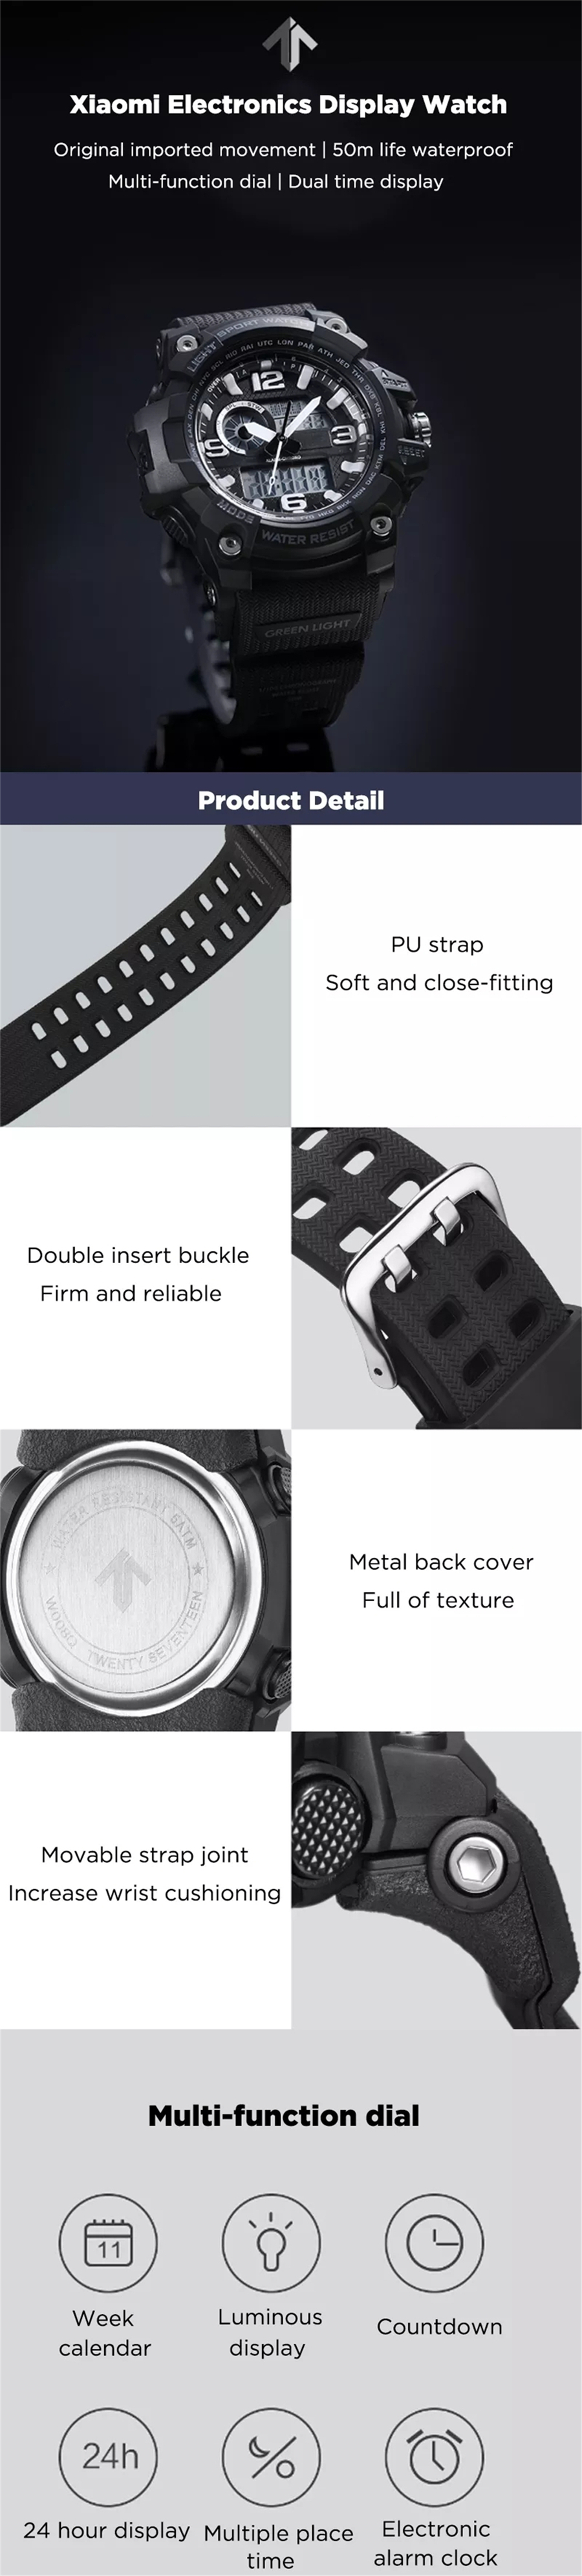 New xiaomi mija outdoor Double display digital watch Original imported movement Multi-function dial Dual time display waterproof (3)